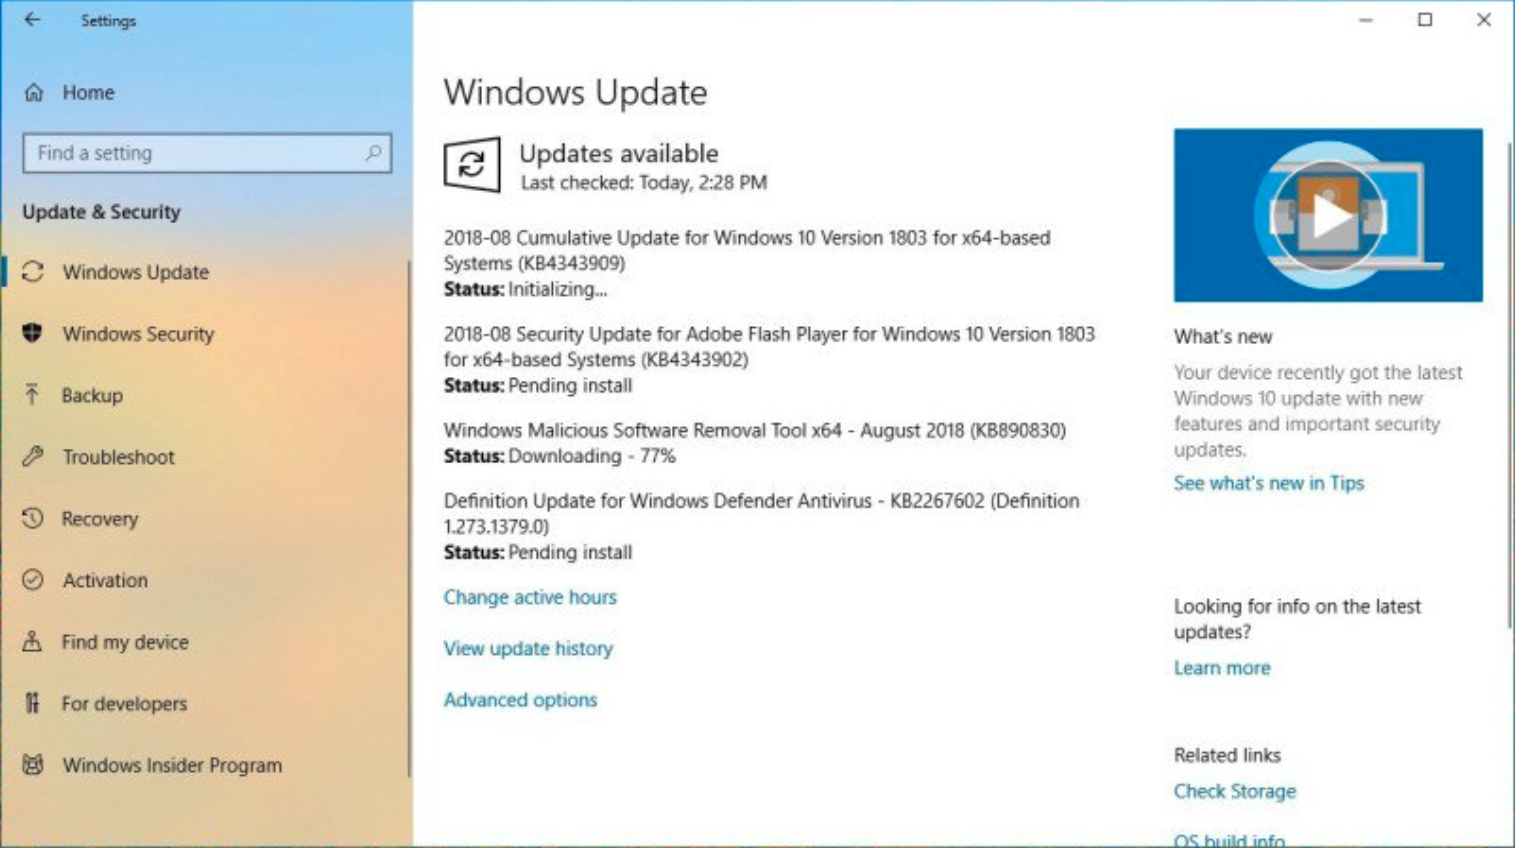 Microsoft released the KB4457128 update for Windows 10 version 1803